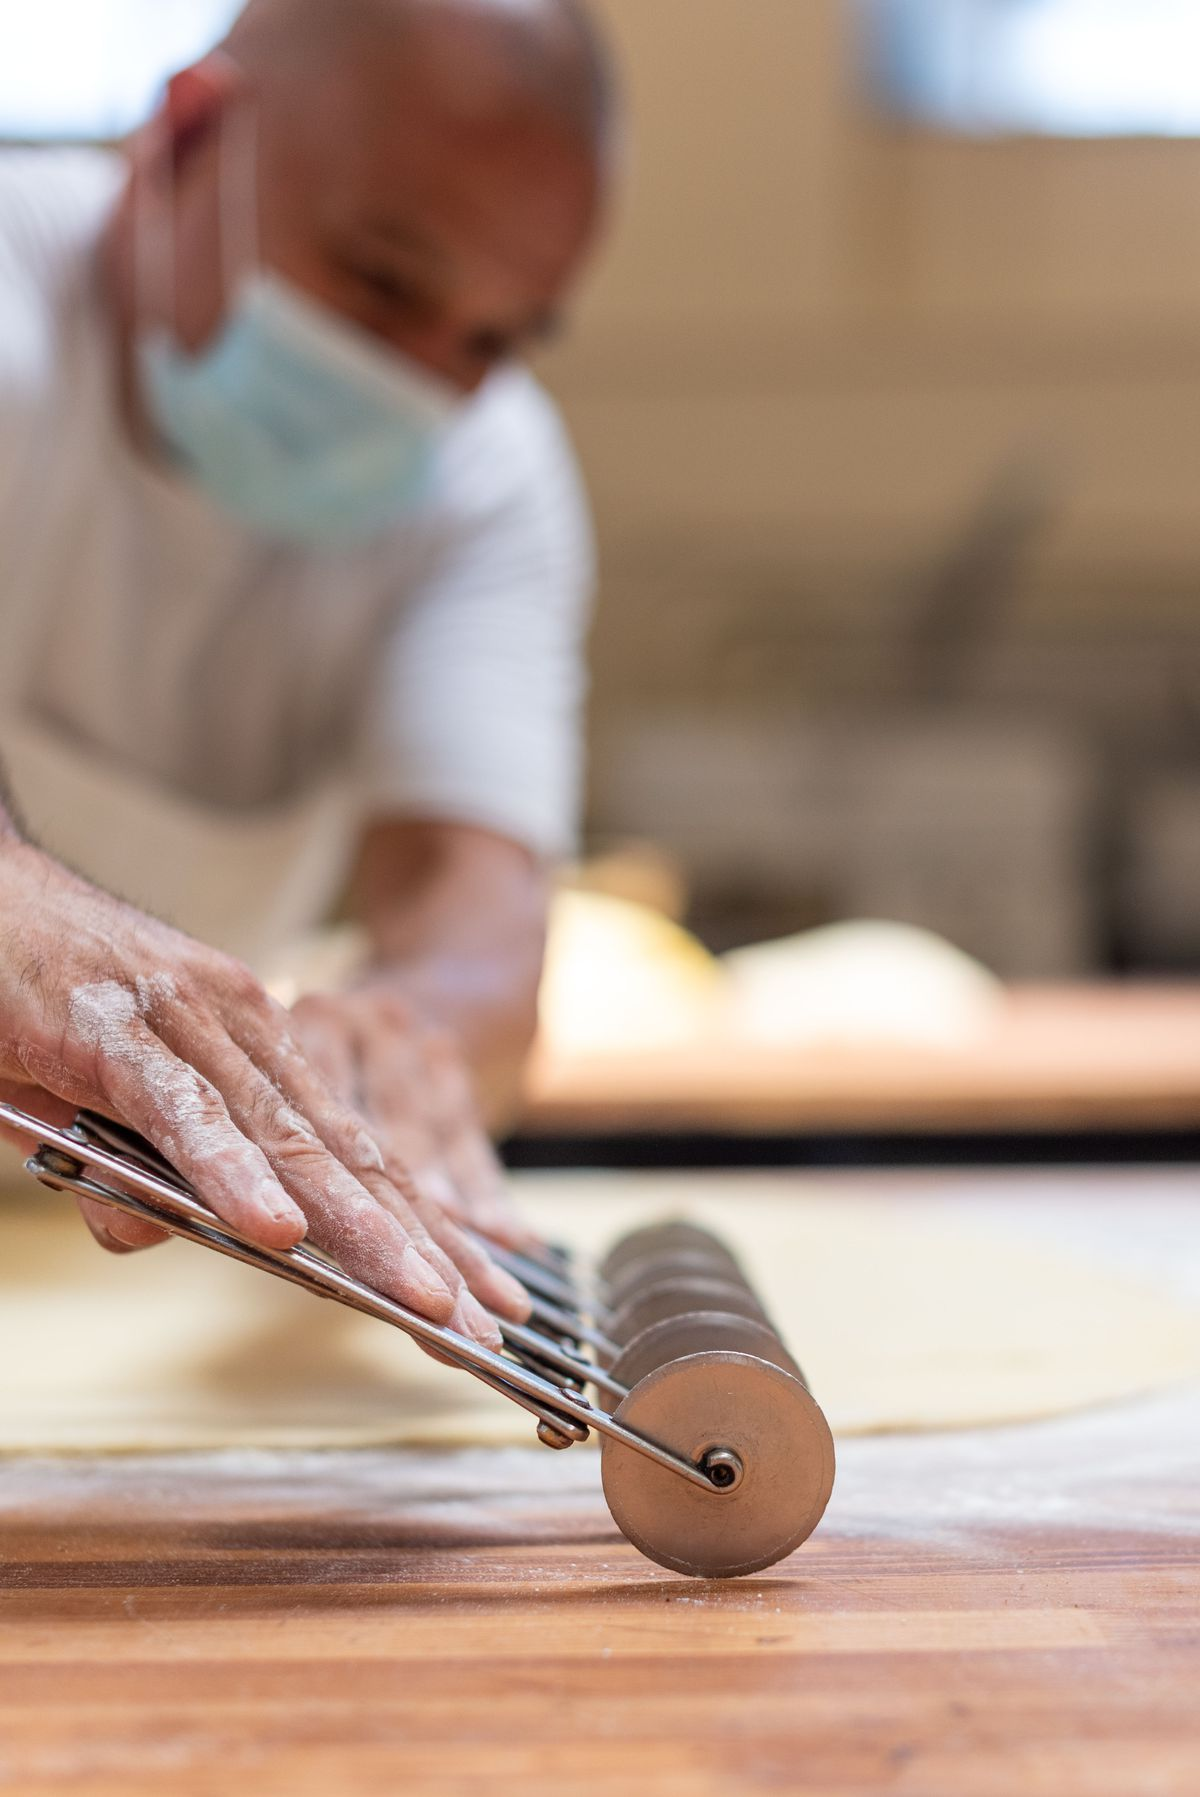 A close up of hands rolling cutters over a sheet of dough.